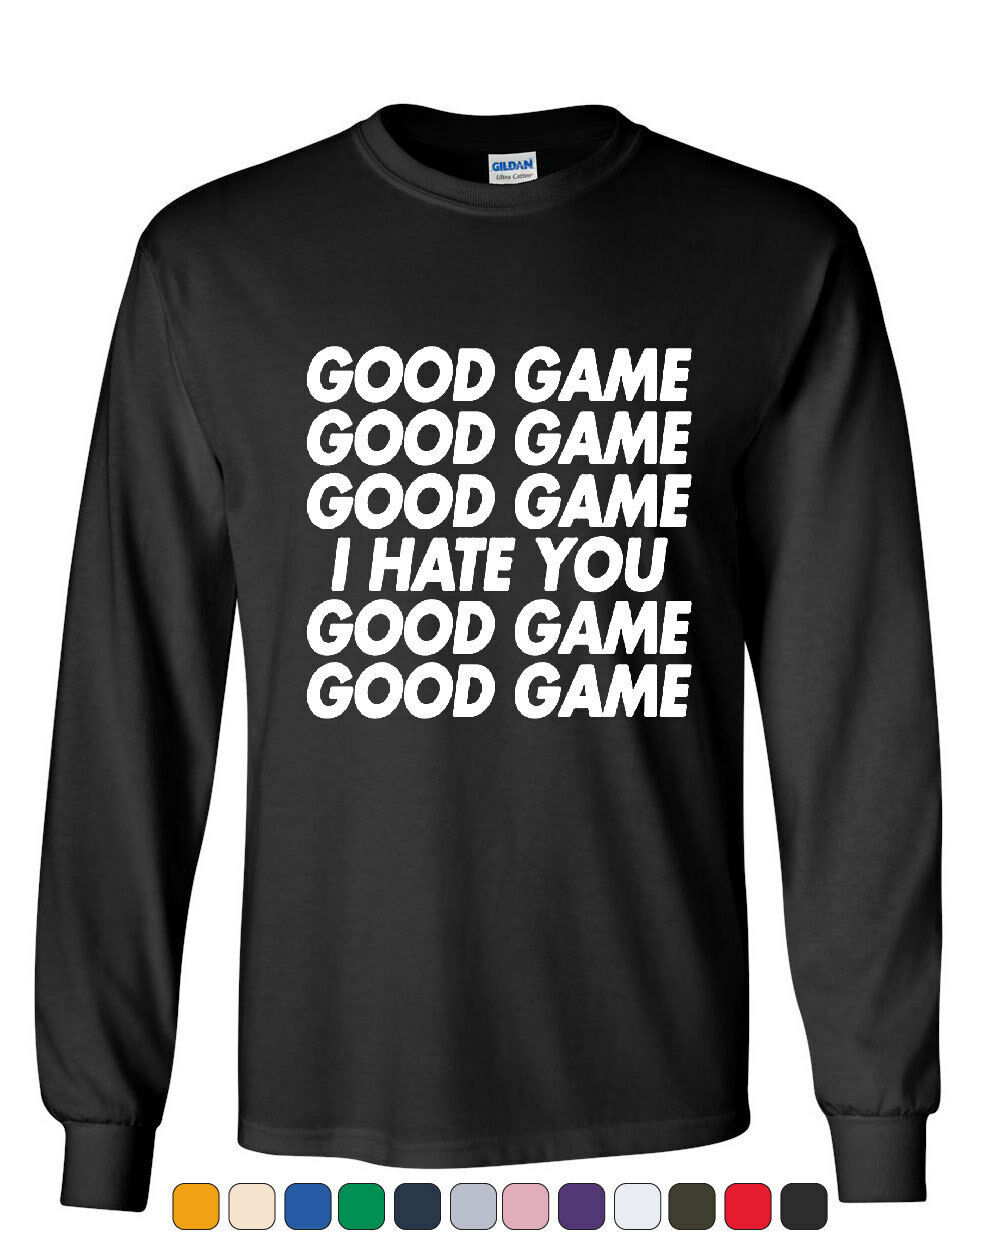 Good Game I Hate You Long Sleeve T-Shirt Funny Sports Team Ball - $9.51 - $22.99